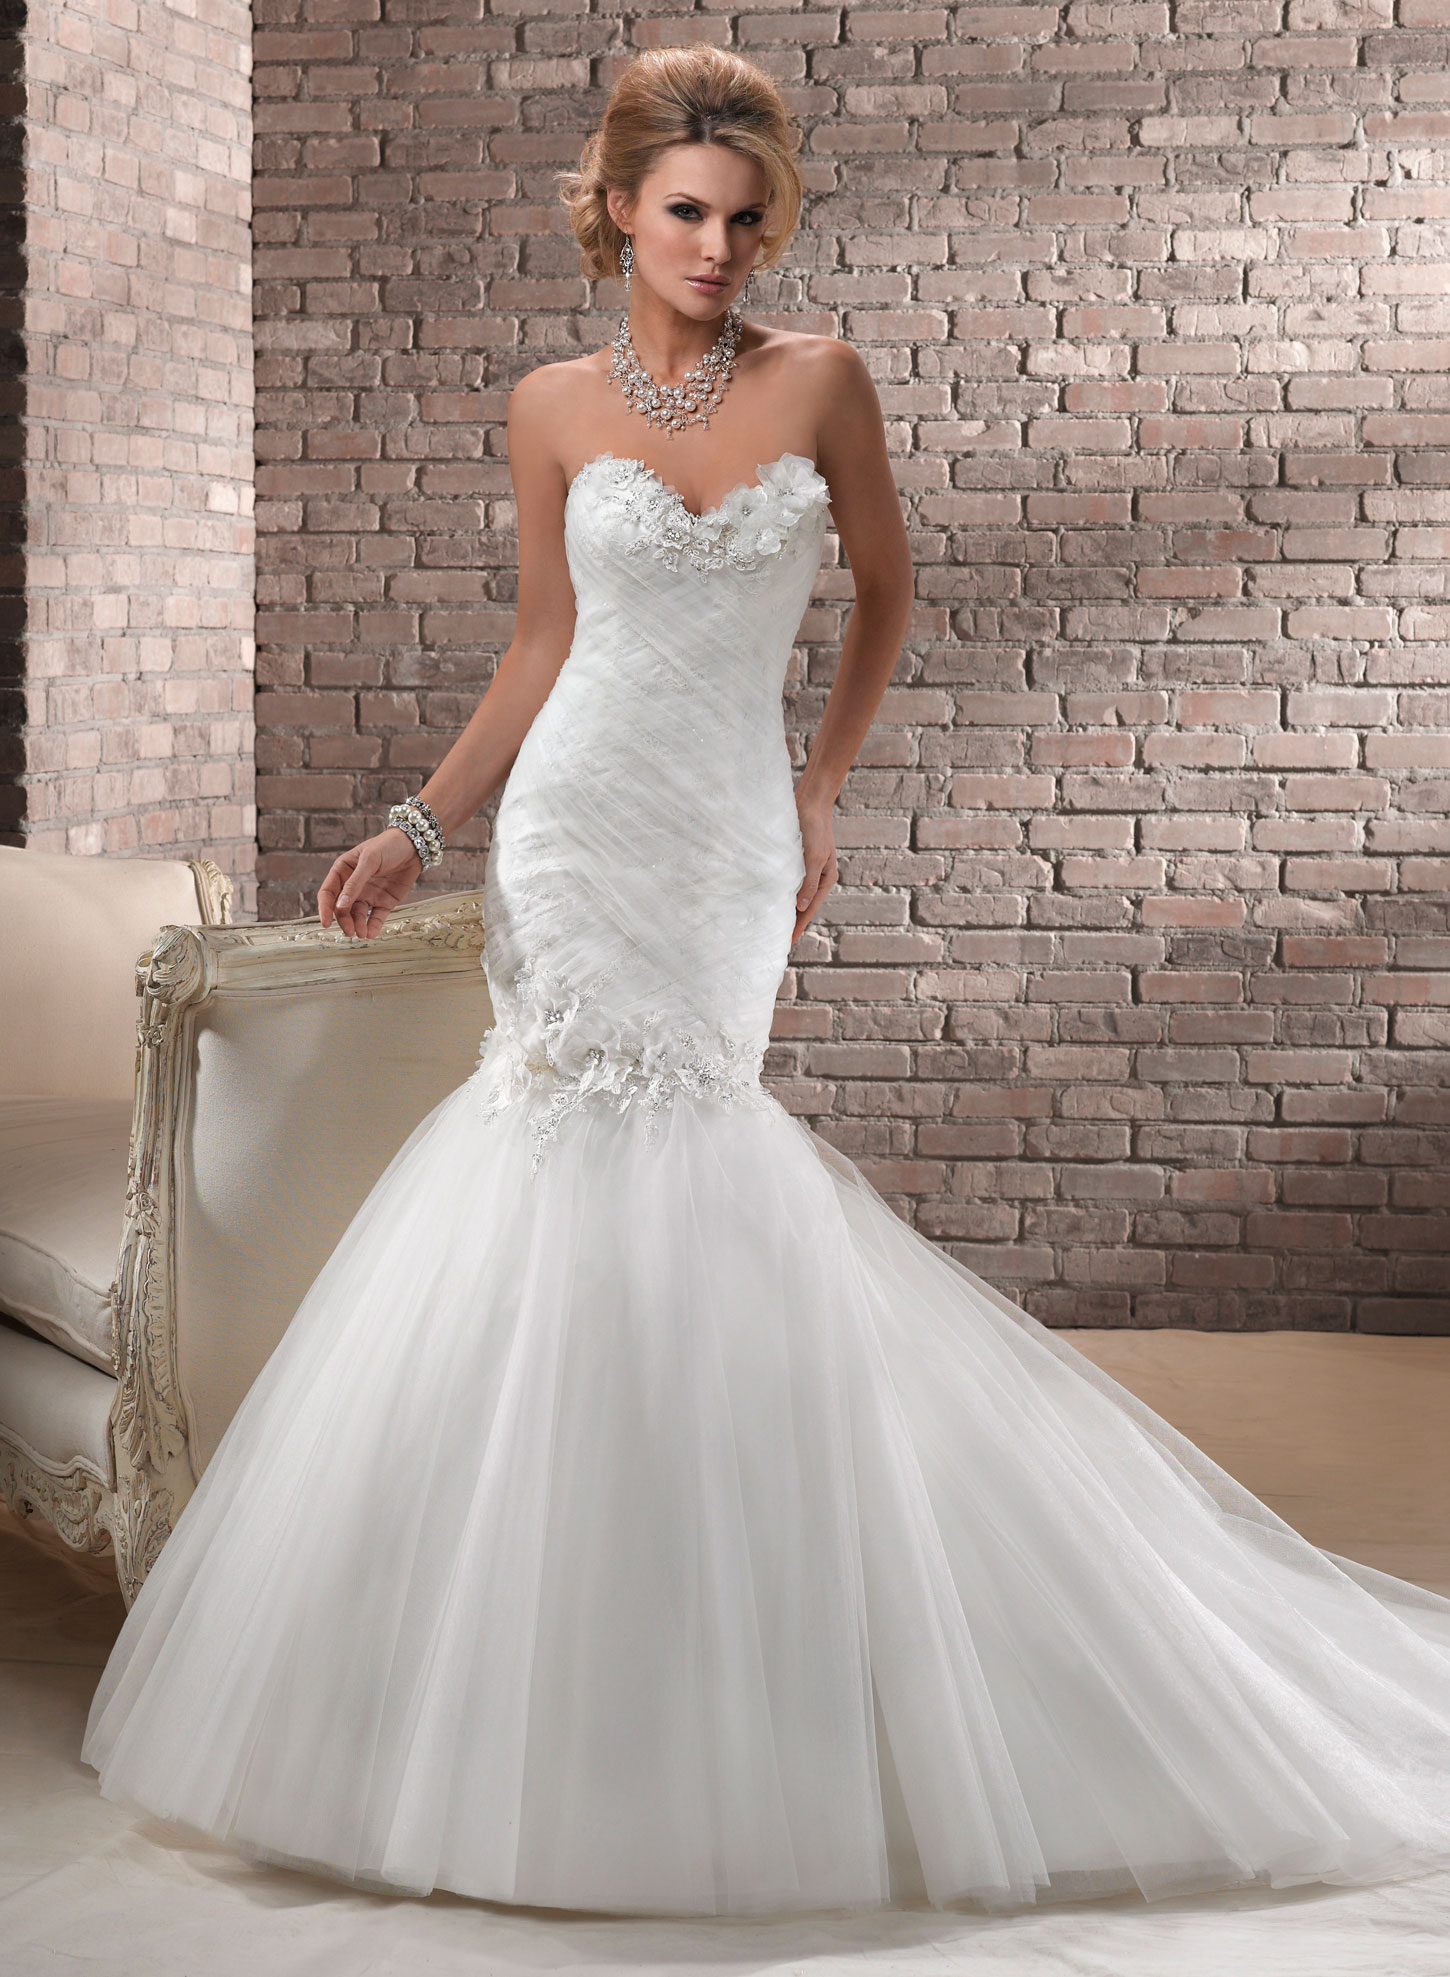 Fishtail Wedding Dress Derby : Lou bridal margot lb gown